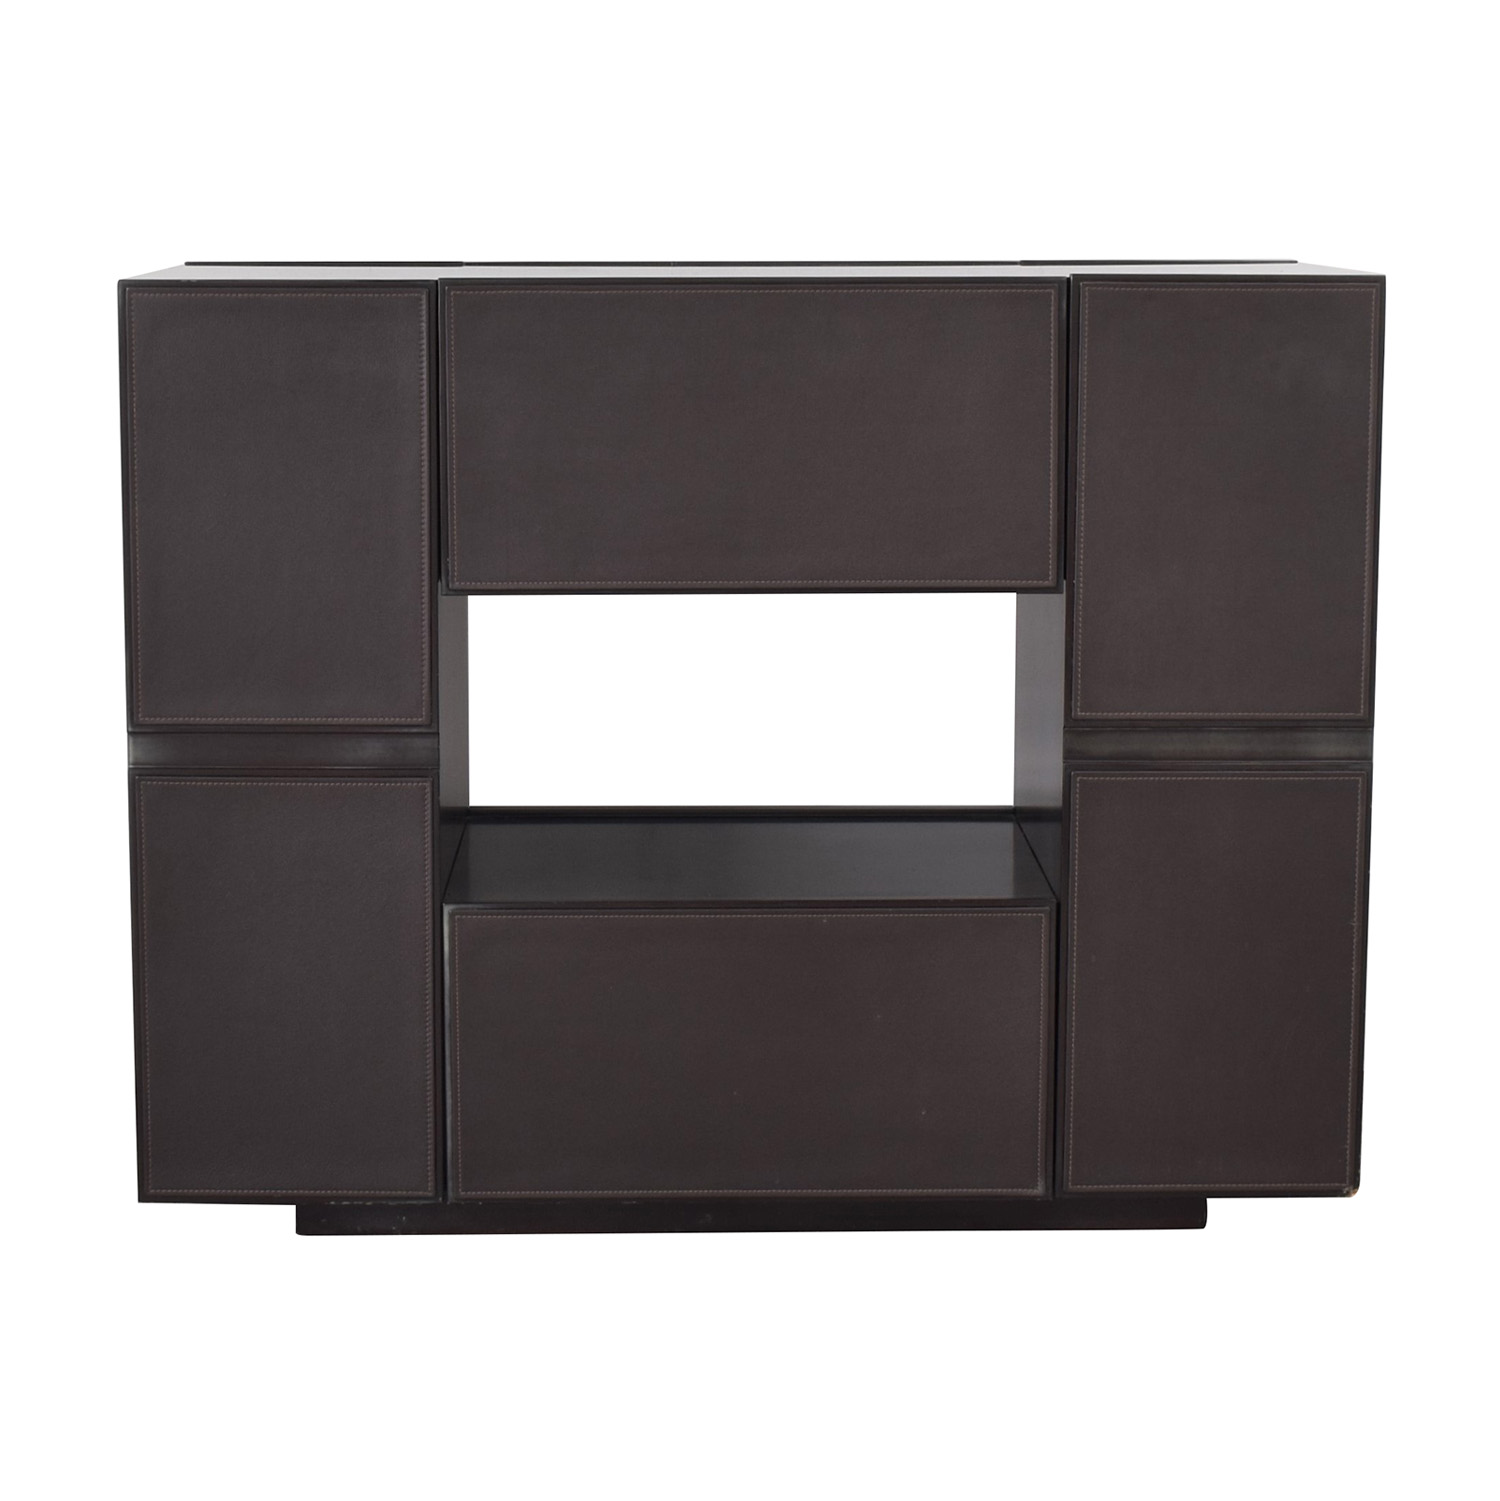 Moura Starr Moura Starr Bar Cabinet dark brown